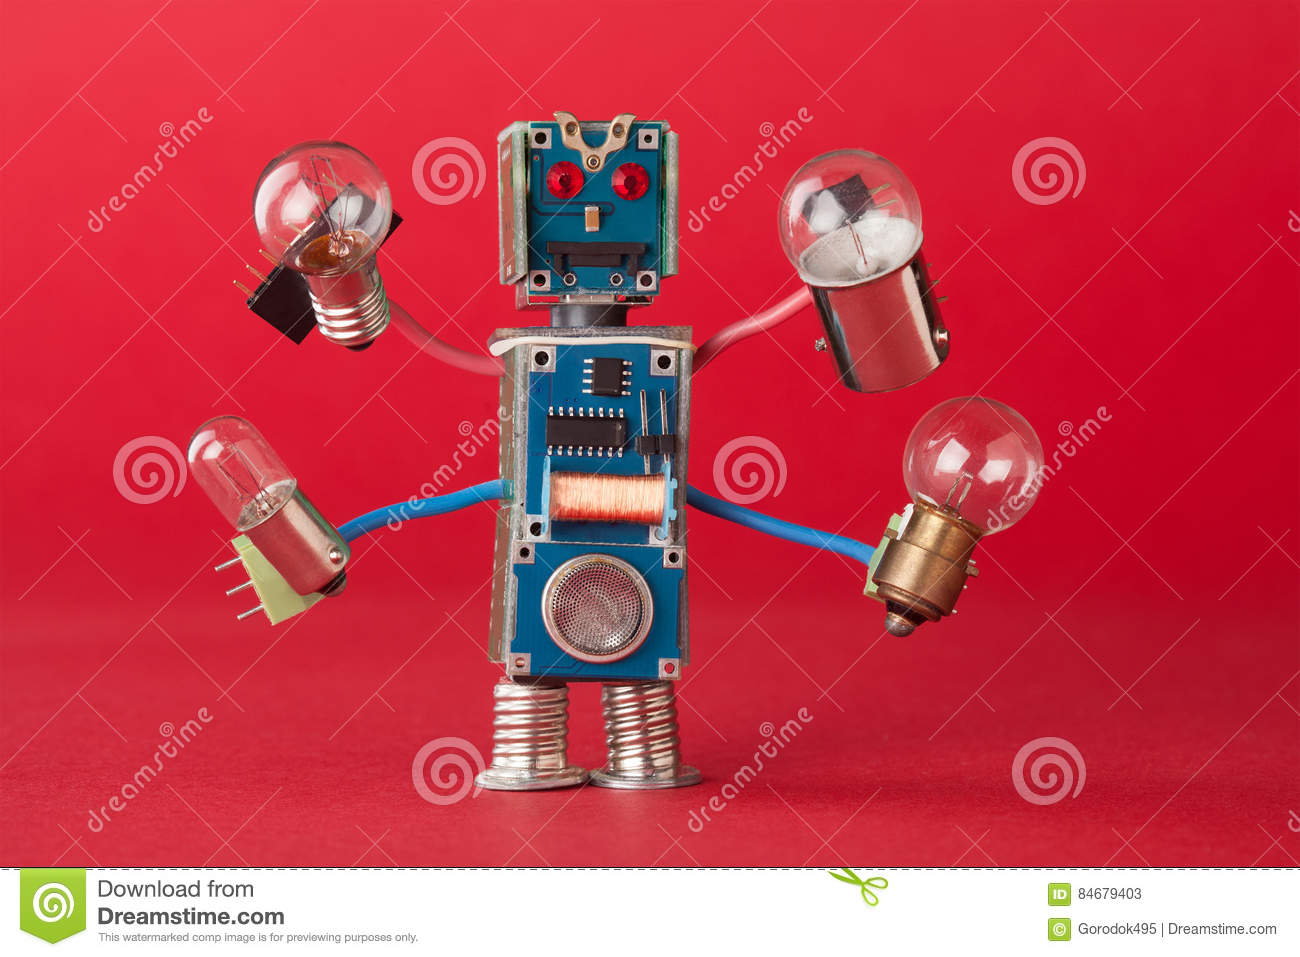 Serviceman illuminator with light bulbs in four hands. Colorful robotic character holds different retro lamps. Funny